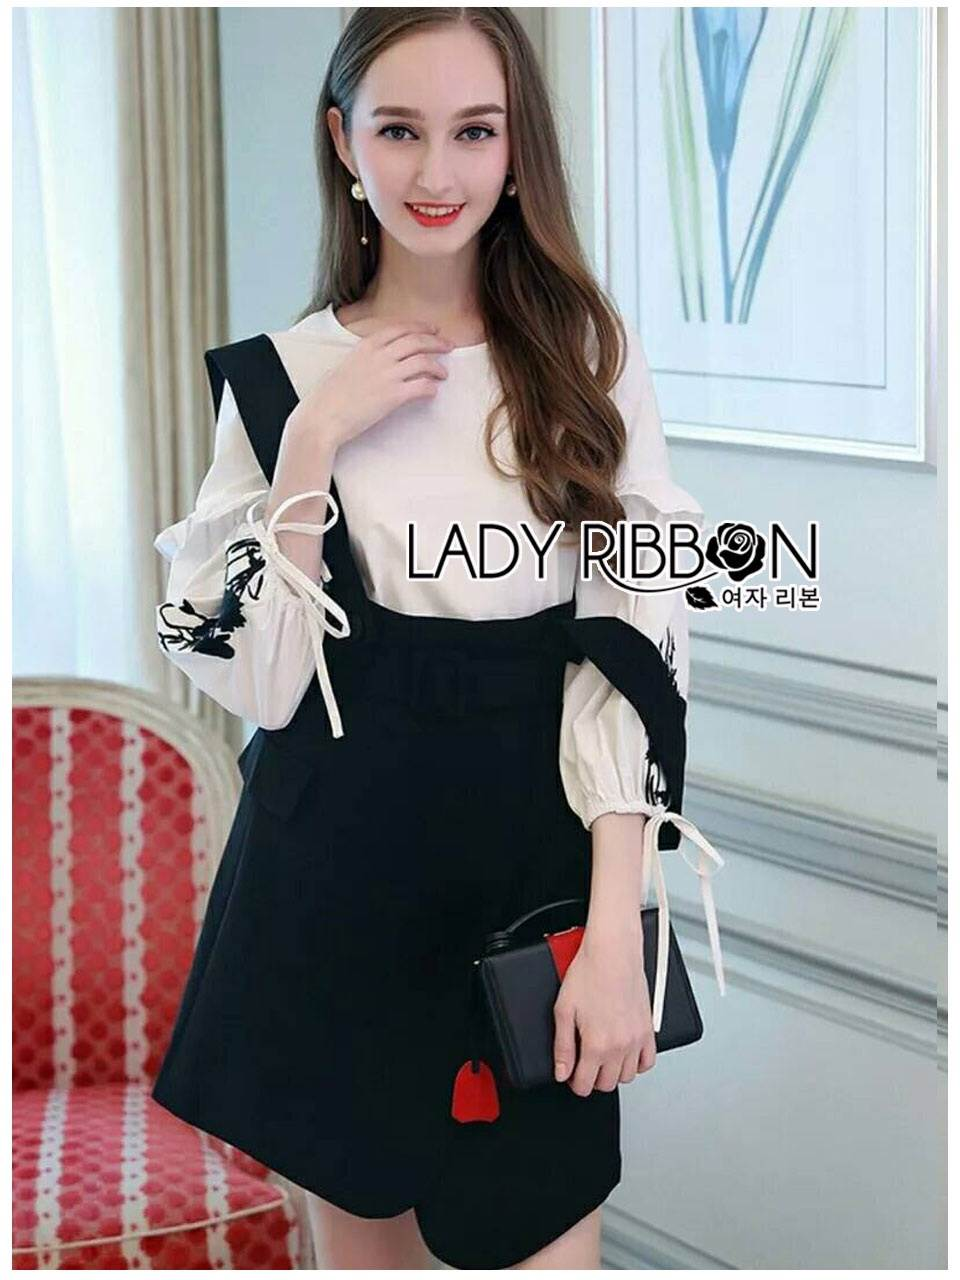 🎀 Lady Ribbon's Made 🎀 Lady Eva Embroidered Cotton Blouse with Black Overall Dress